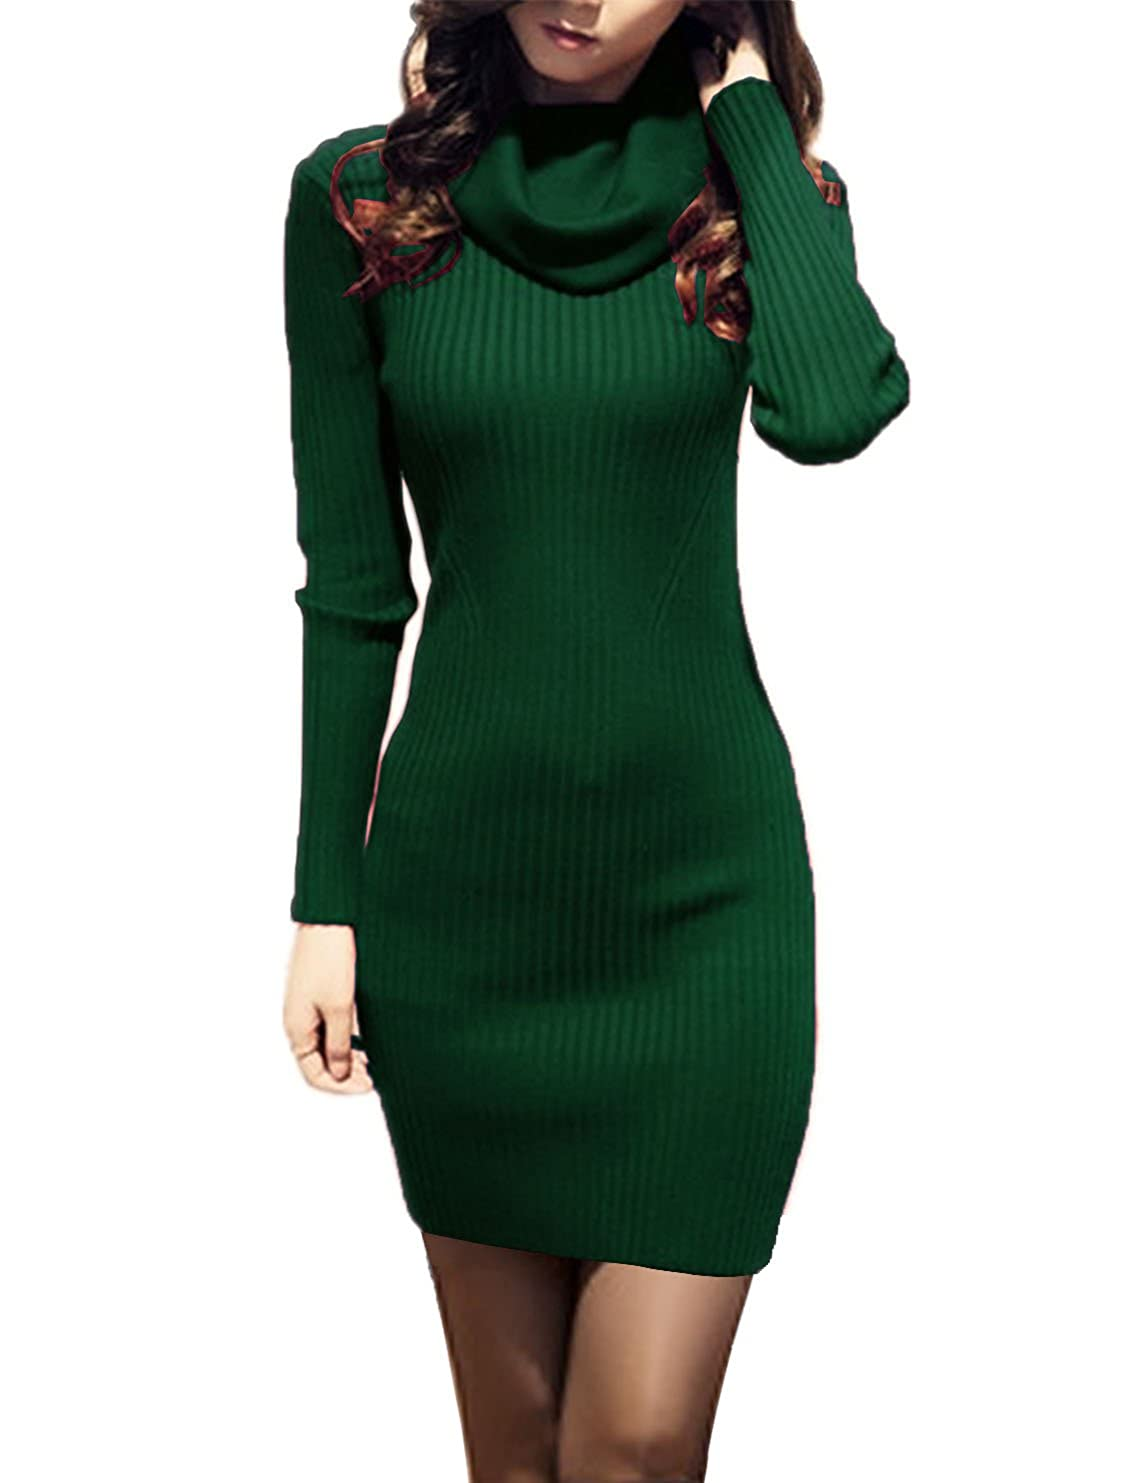 V28® Women Cowl Neck Knit Stretchable Elasticity Long Sleeve Slim Fit Sweater Dress